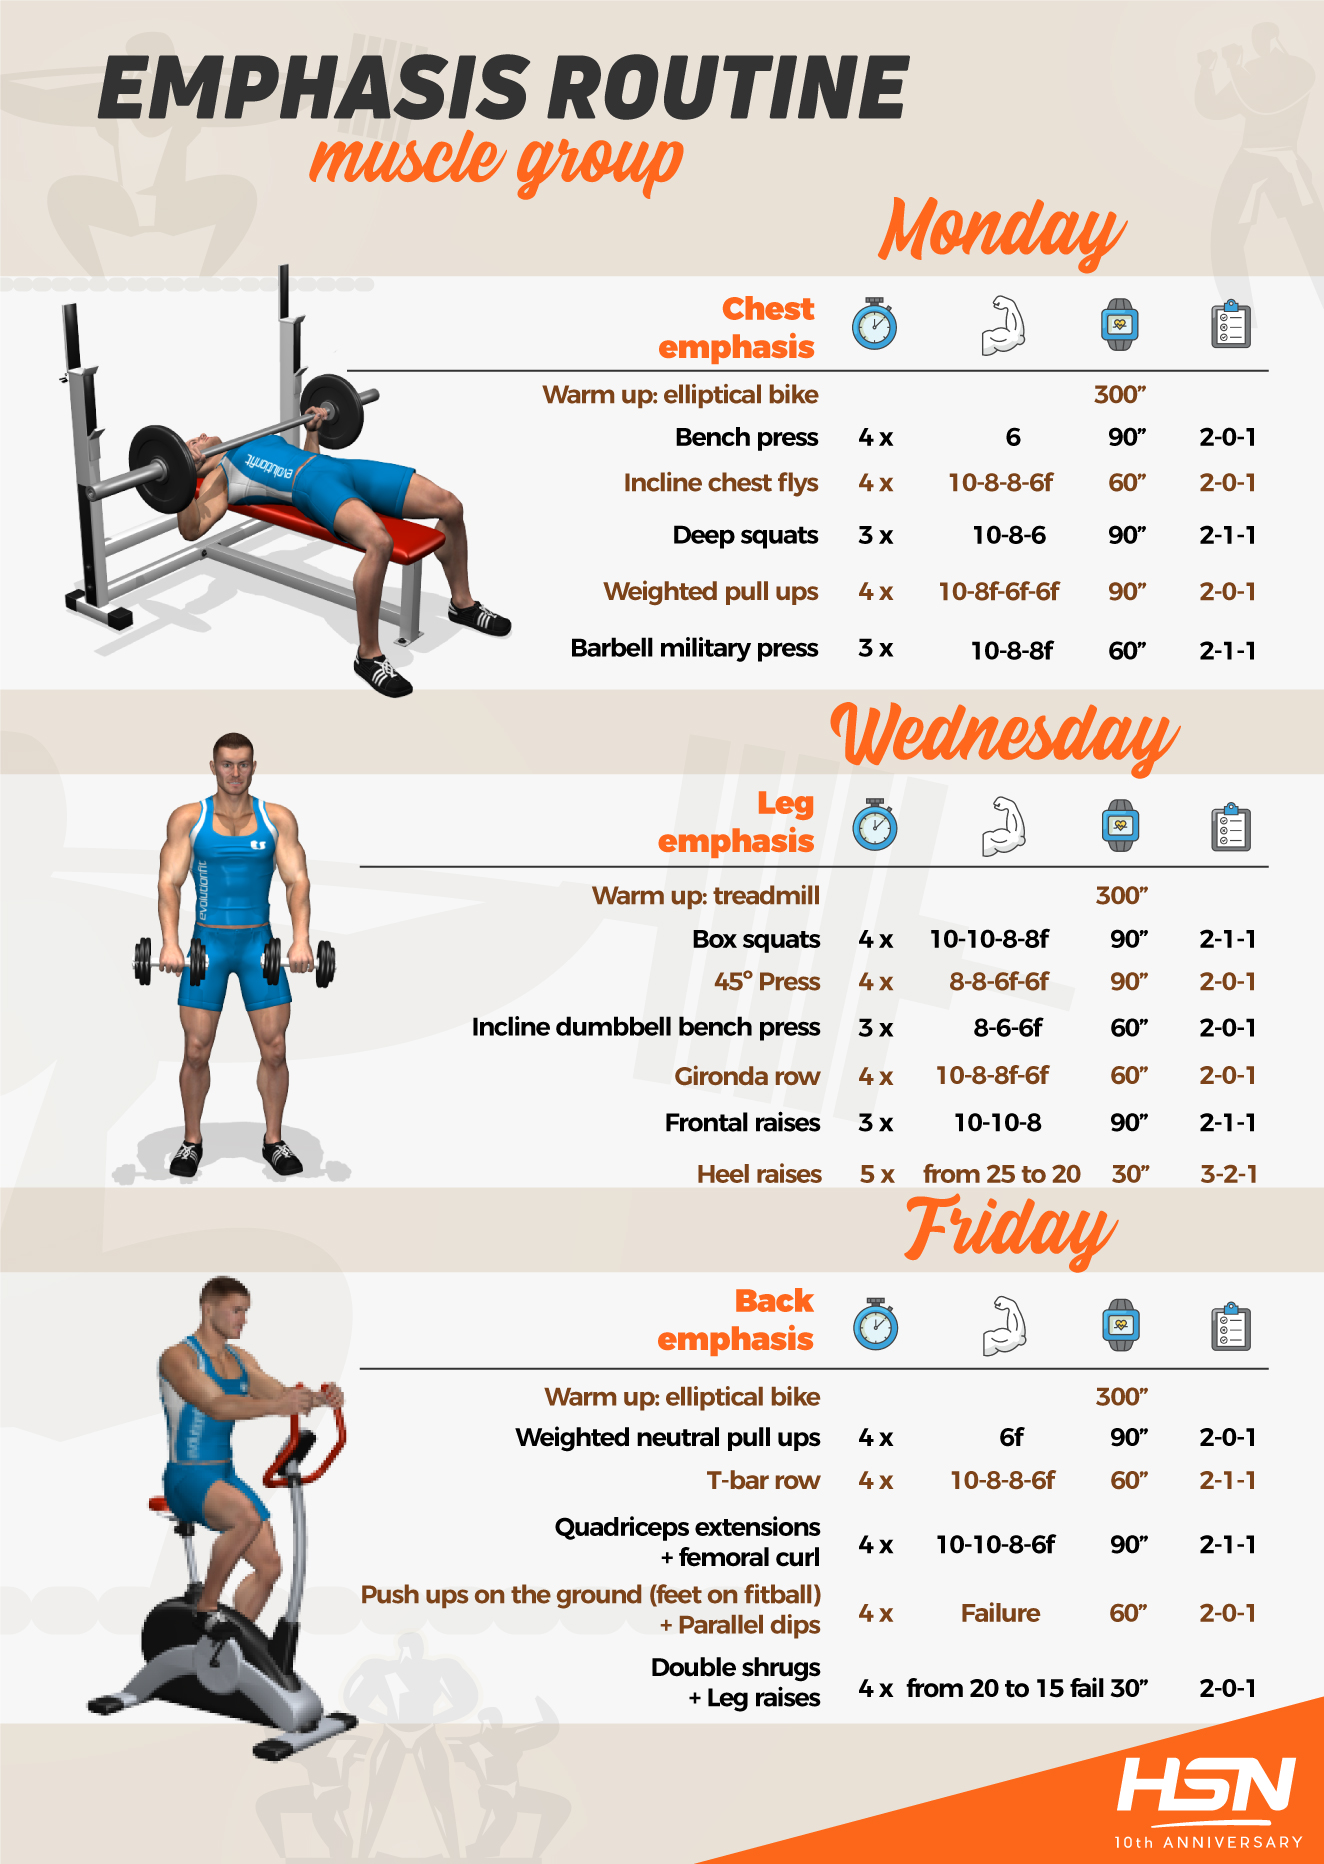 Routine with muscle group emphasis